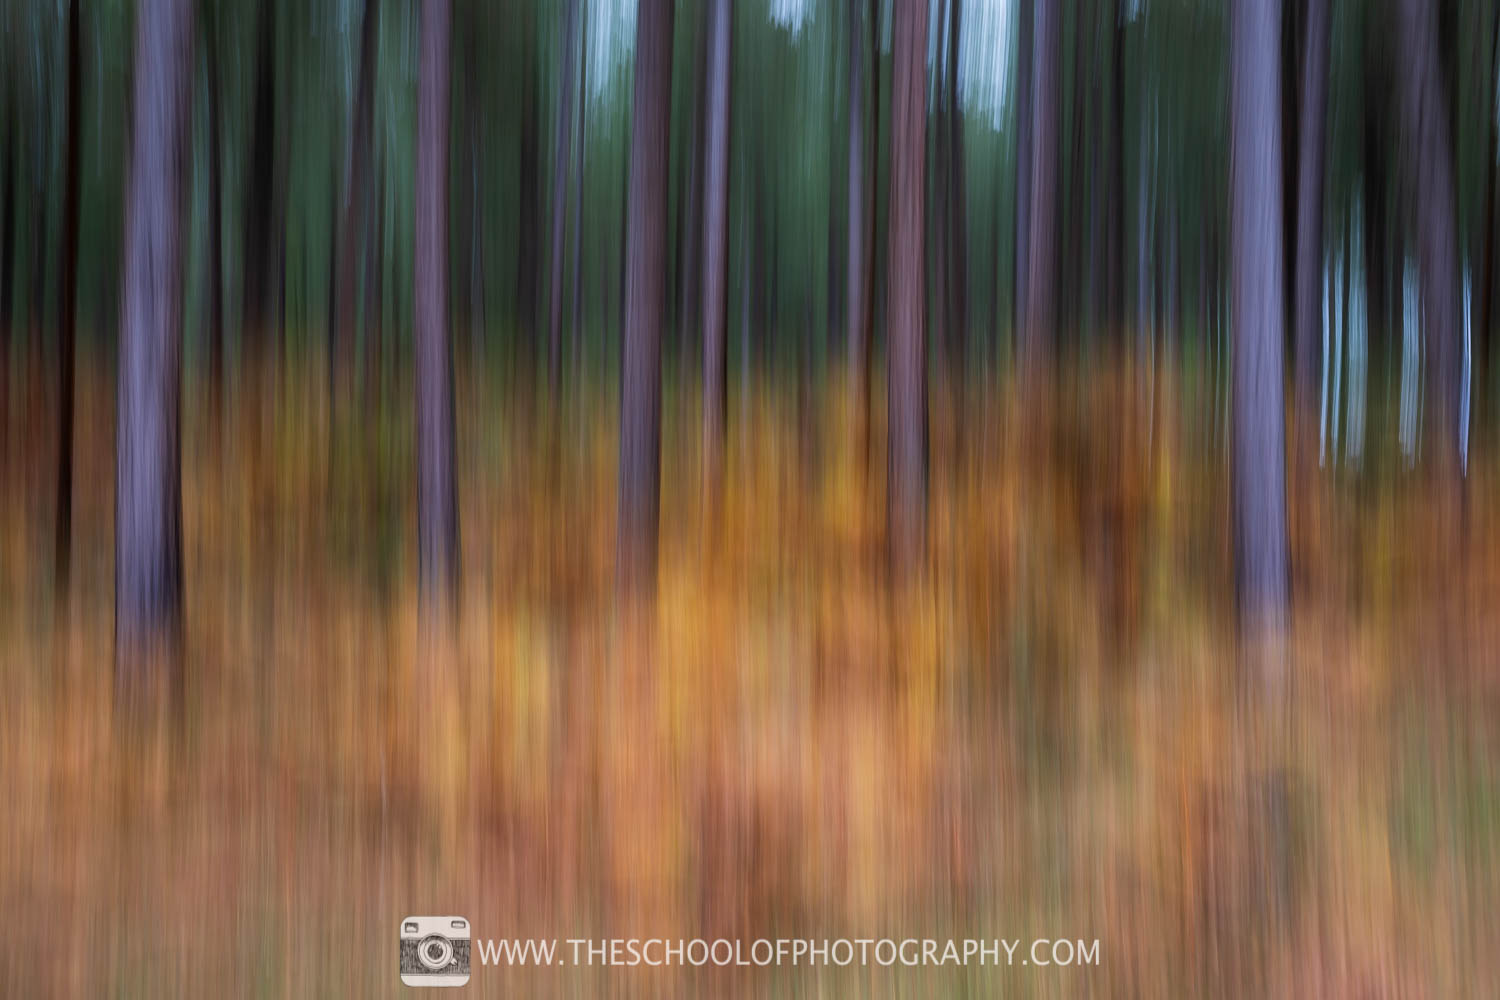 ICM photography with fast pan at 1/2 second shutter speed